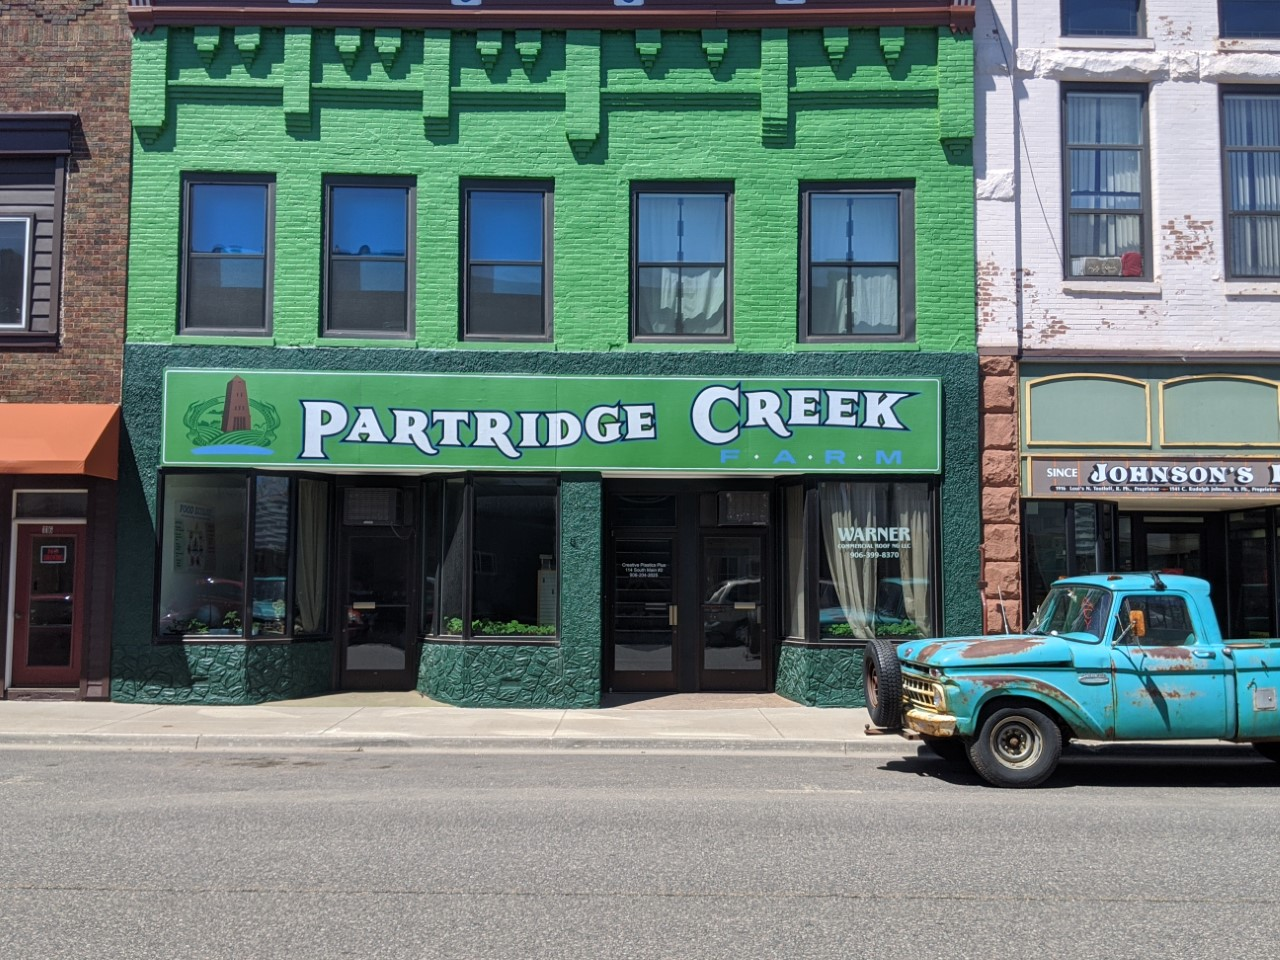 Partridge Creek Farm office in Ishpeming on Main St.